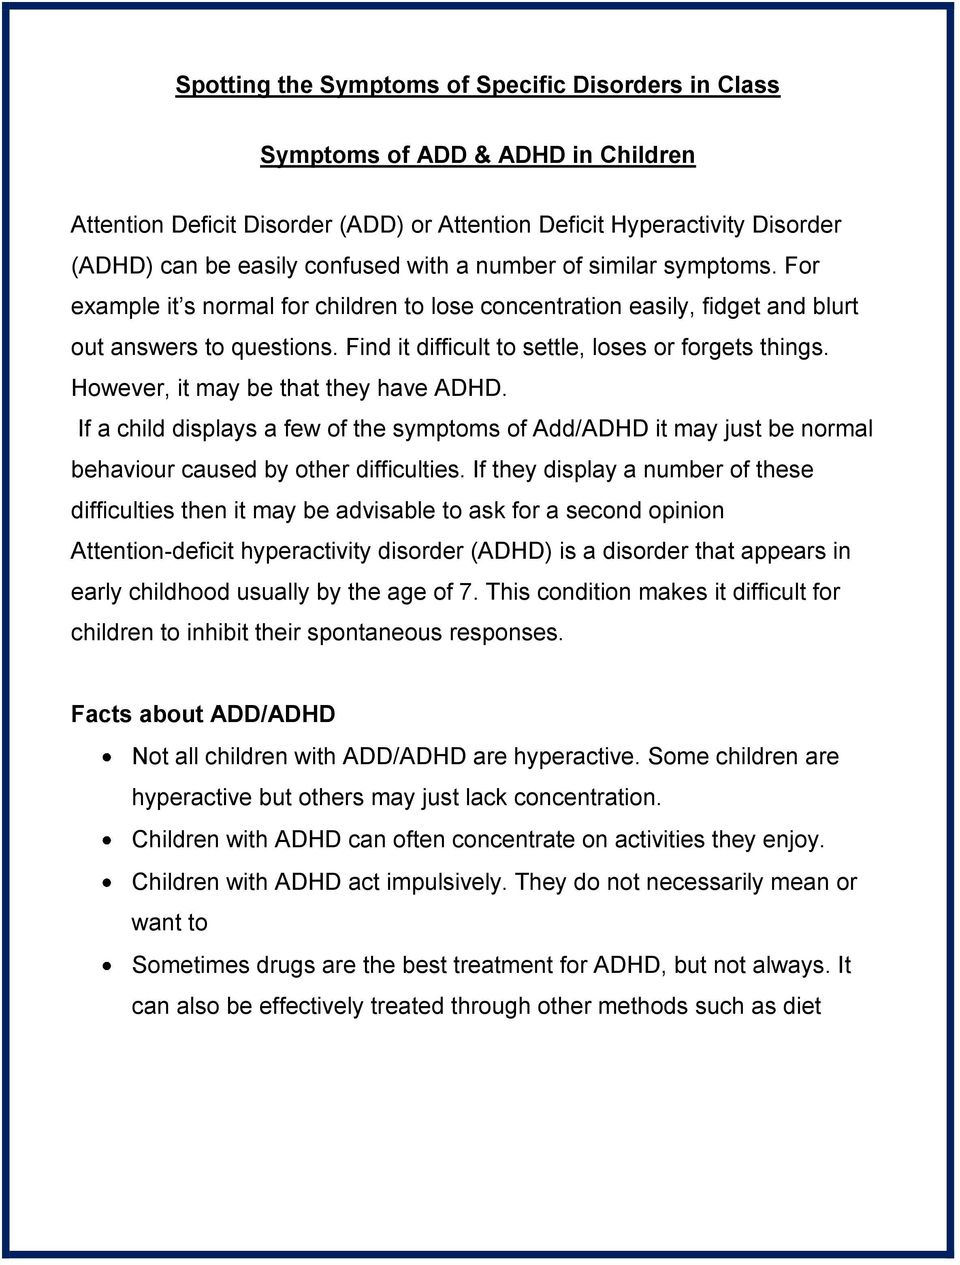 However, it may be that they have ADHD. If a child displays a few of the symptoms of Add/ADHD it may just be normal behaviour caused by other difficulties.